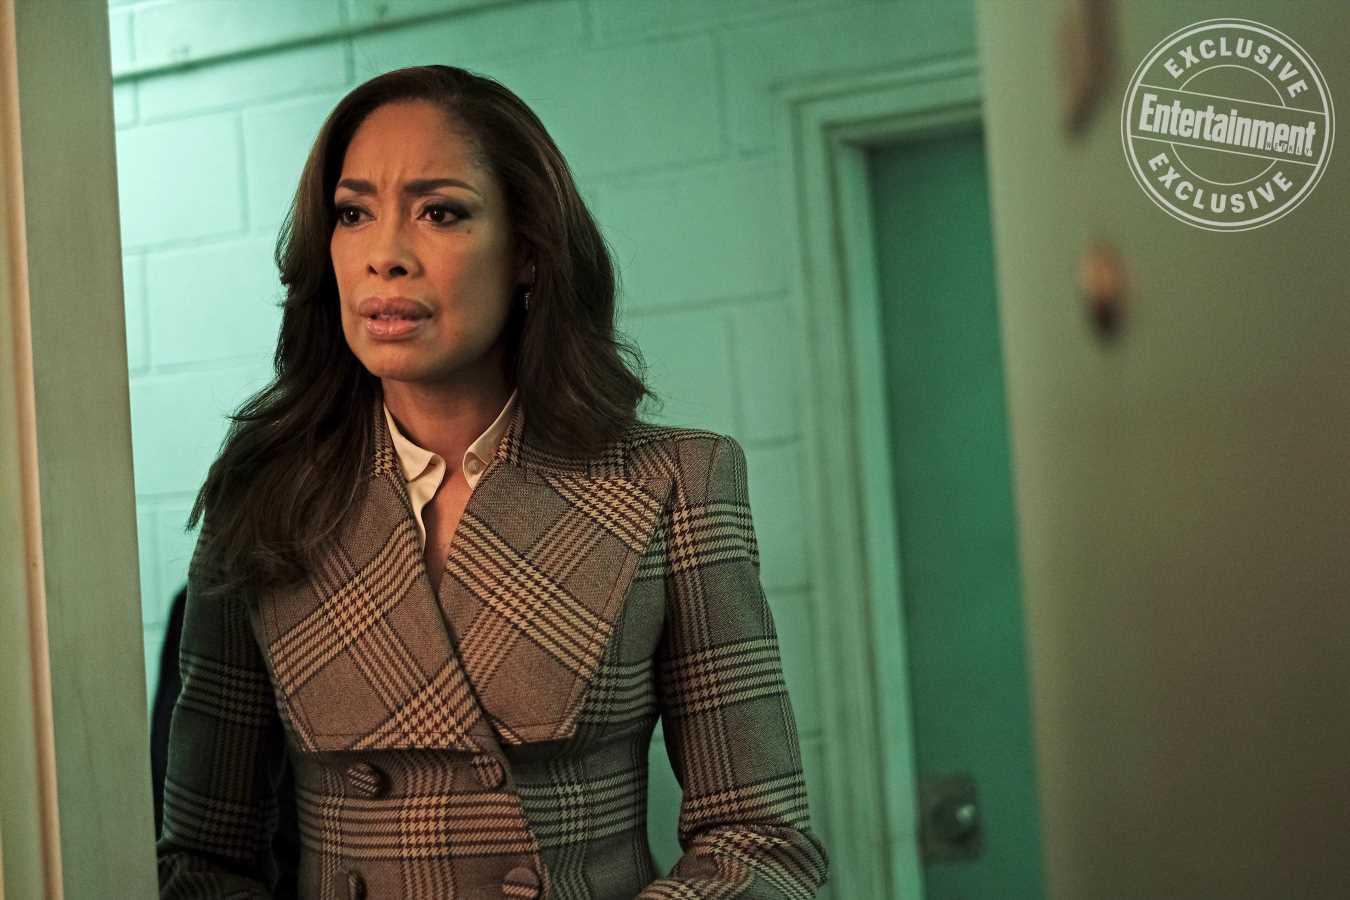 Gina Torres on how her spin-off Pearson differs from Suits